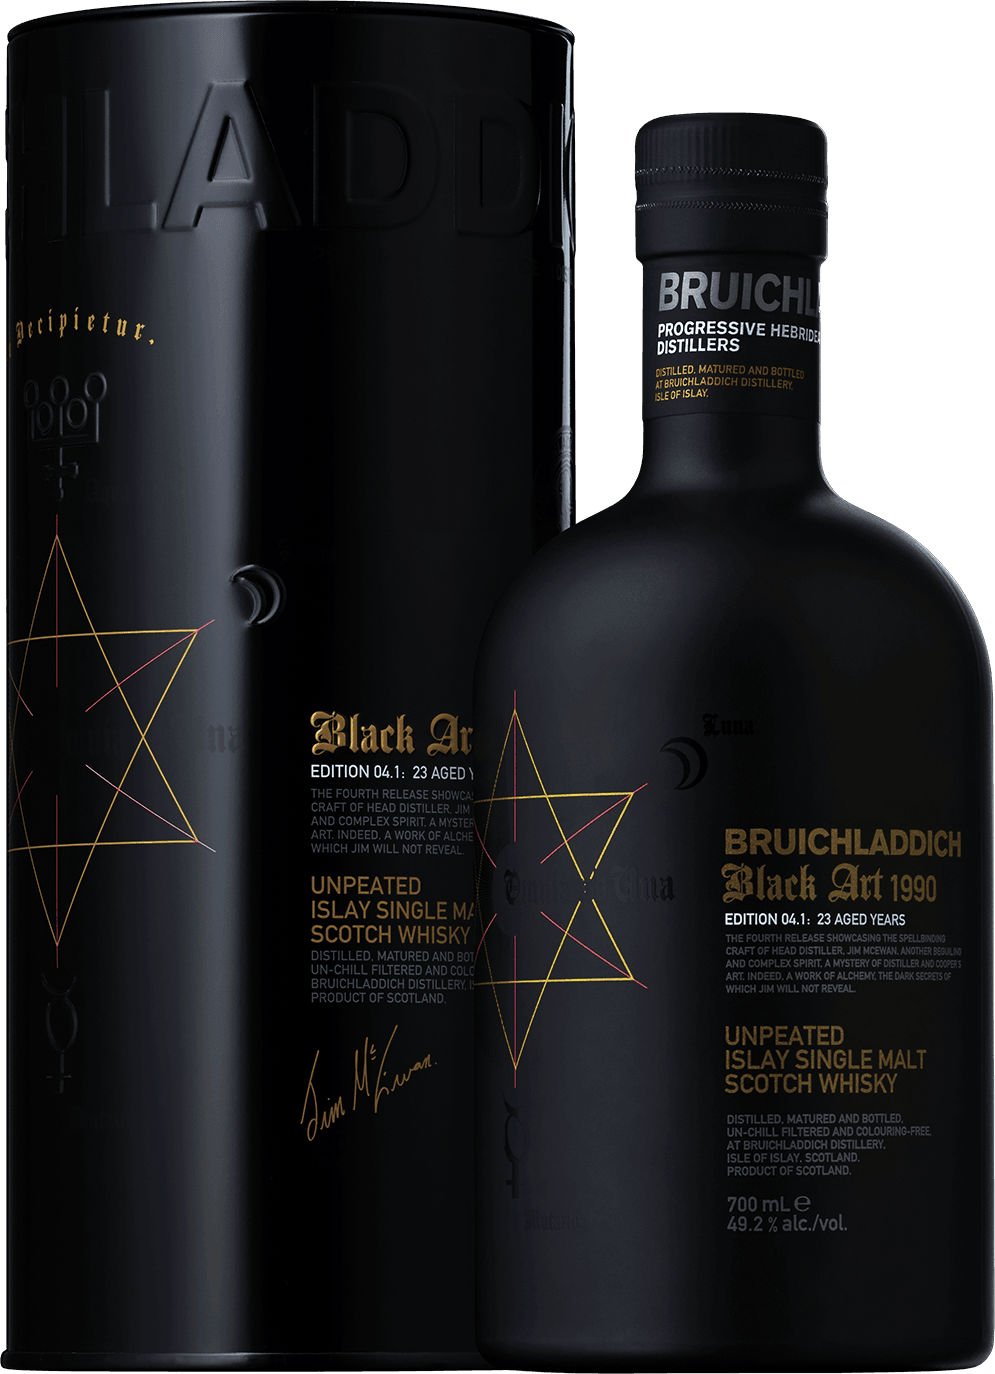 Bruichladdich, Black art 1990